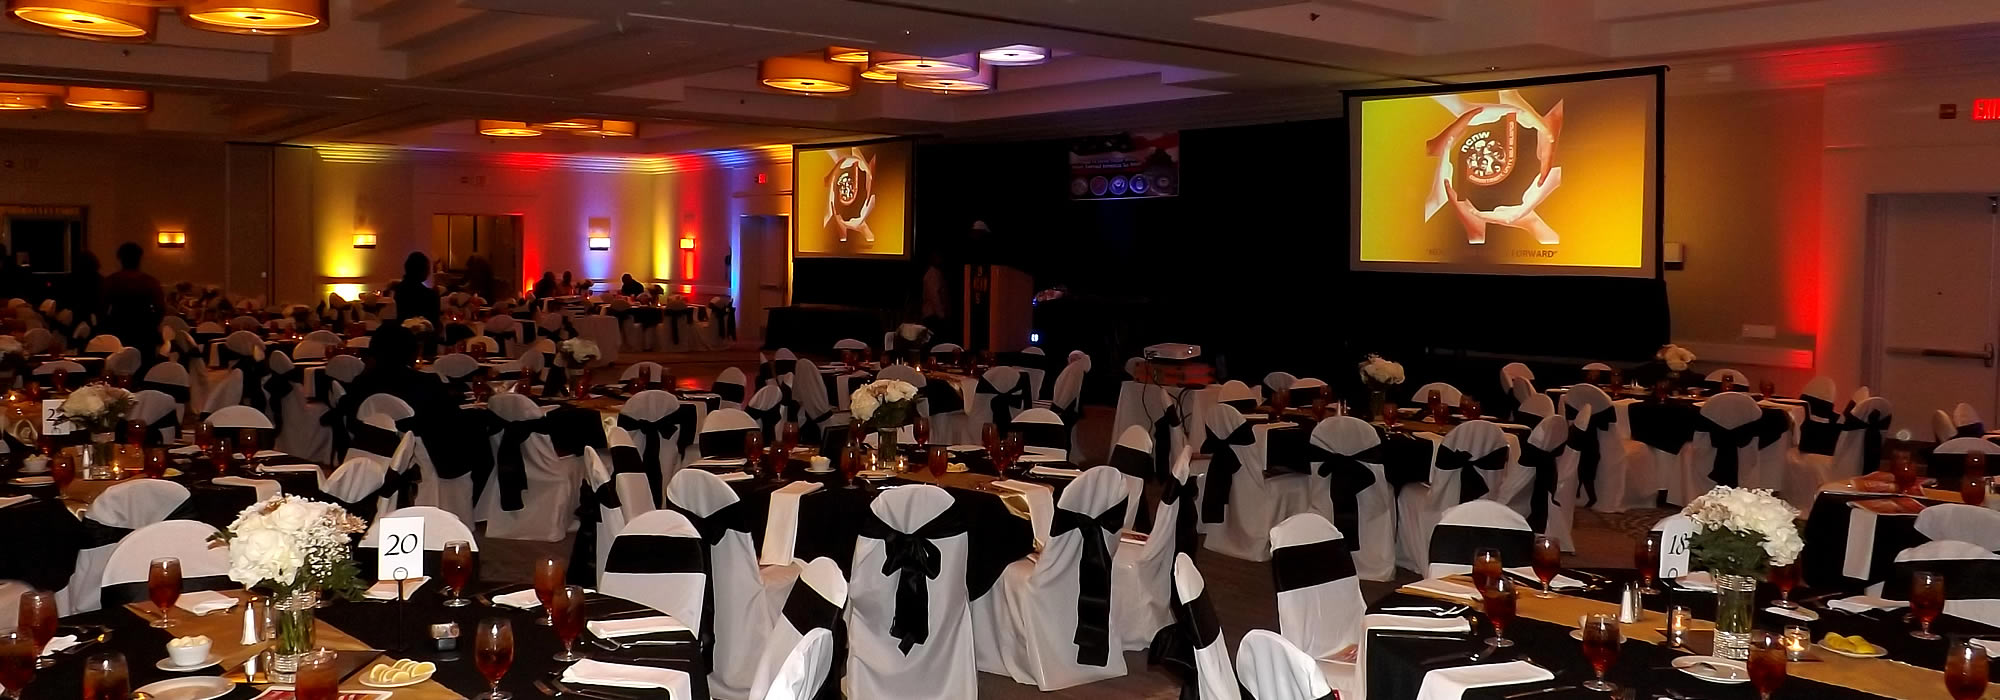 Interior photo of a fundraising gala